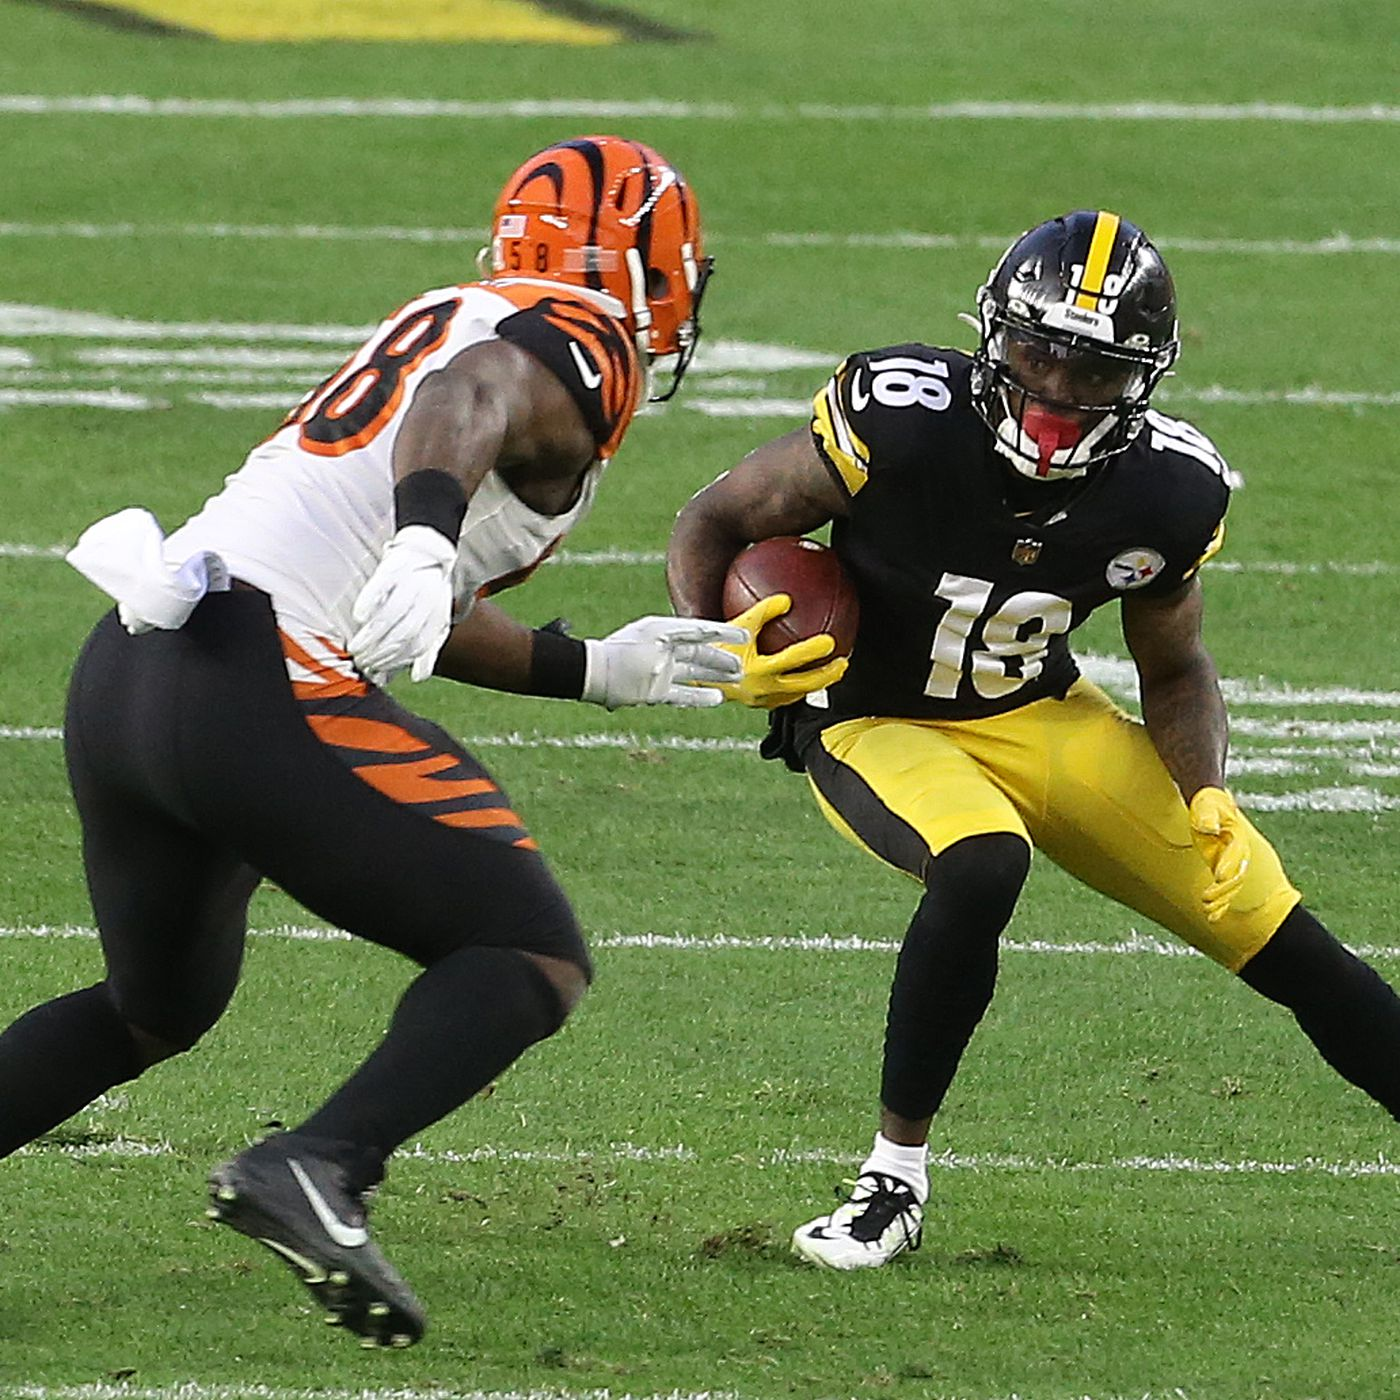 Bengals steelers 2021 betting sites pot limit omaha betting